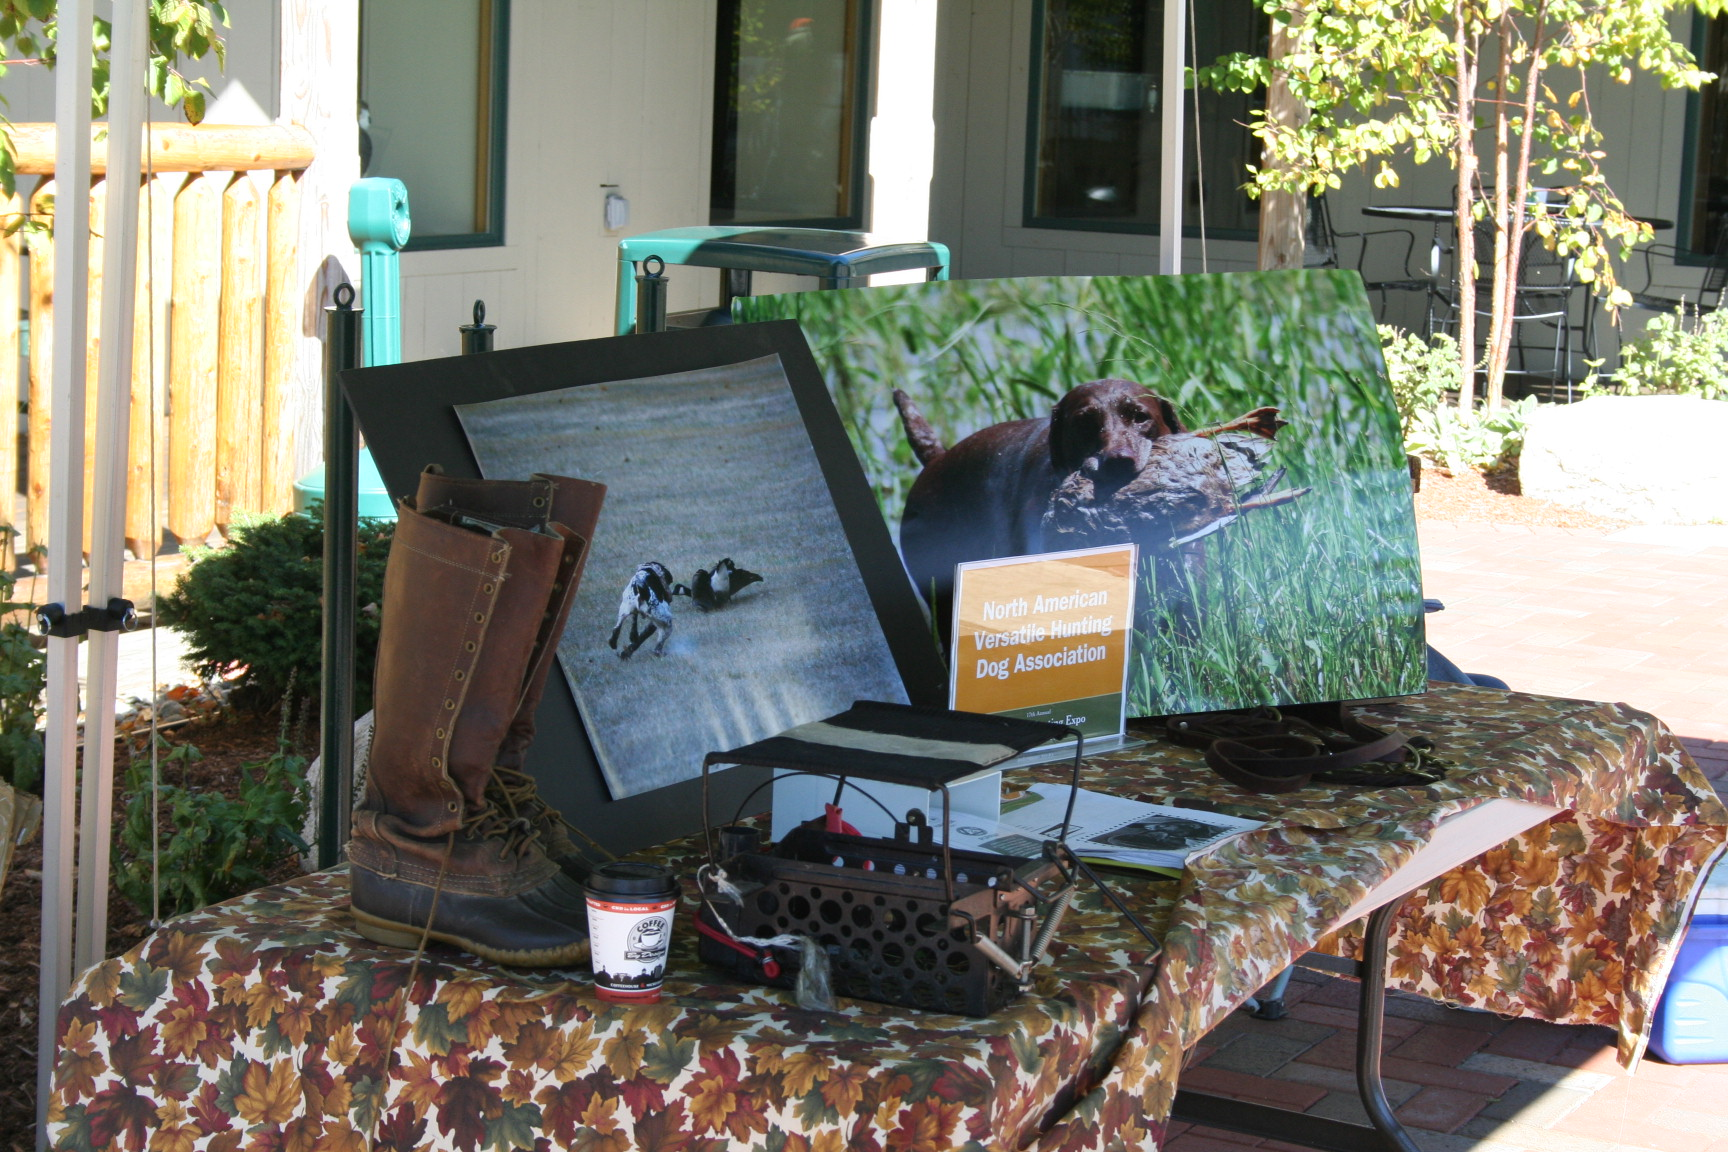 North American Versetile Hunting Dog Association Table